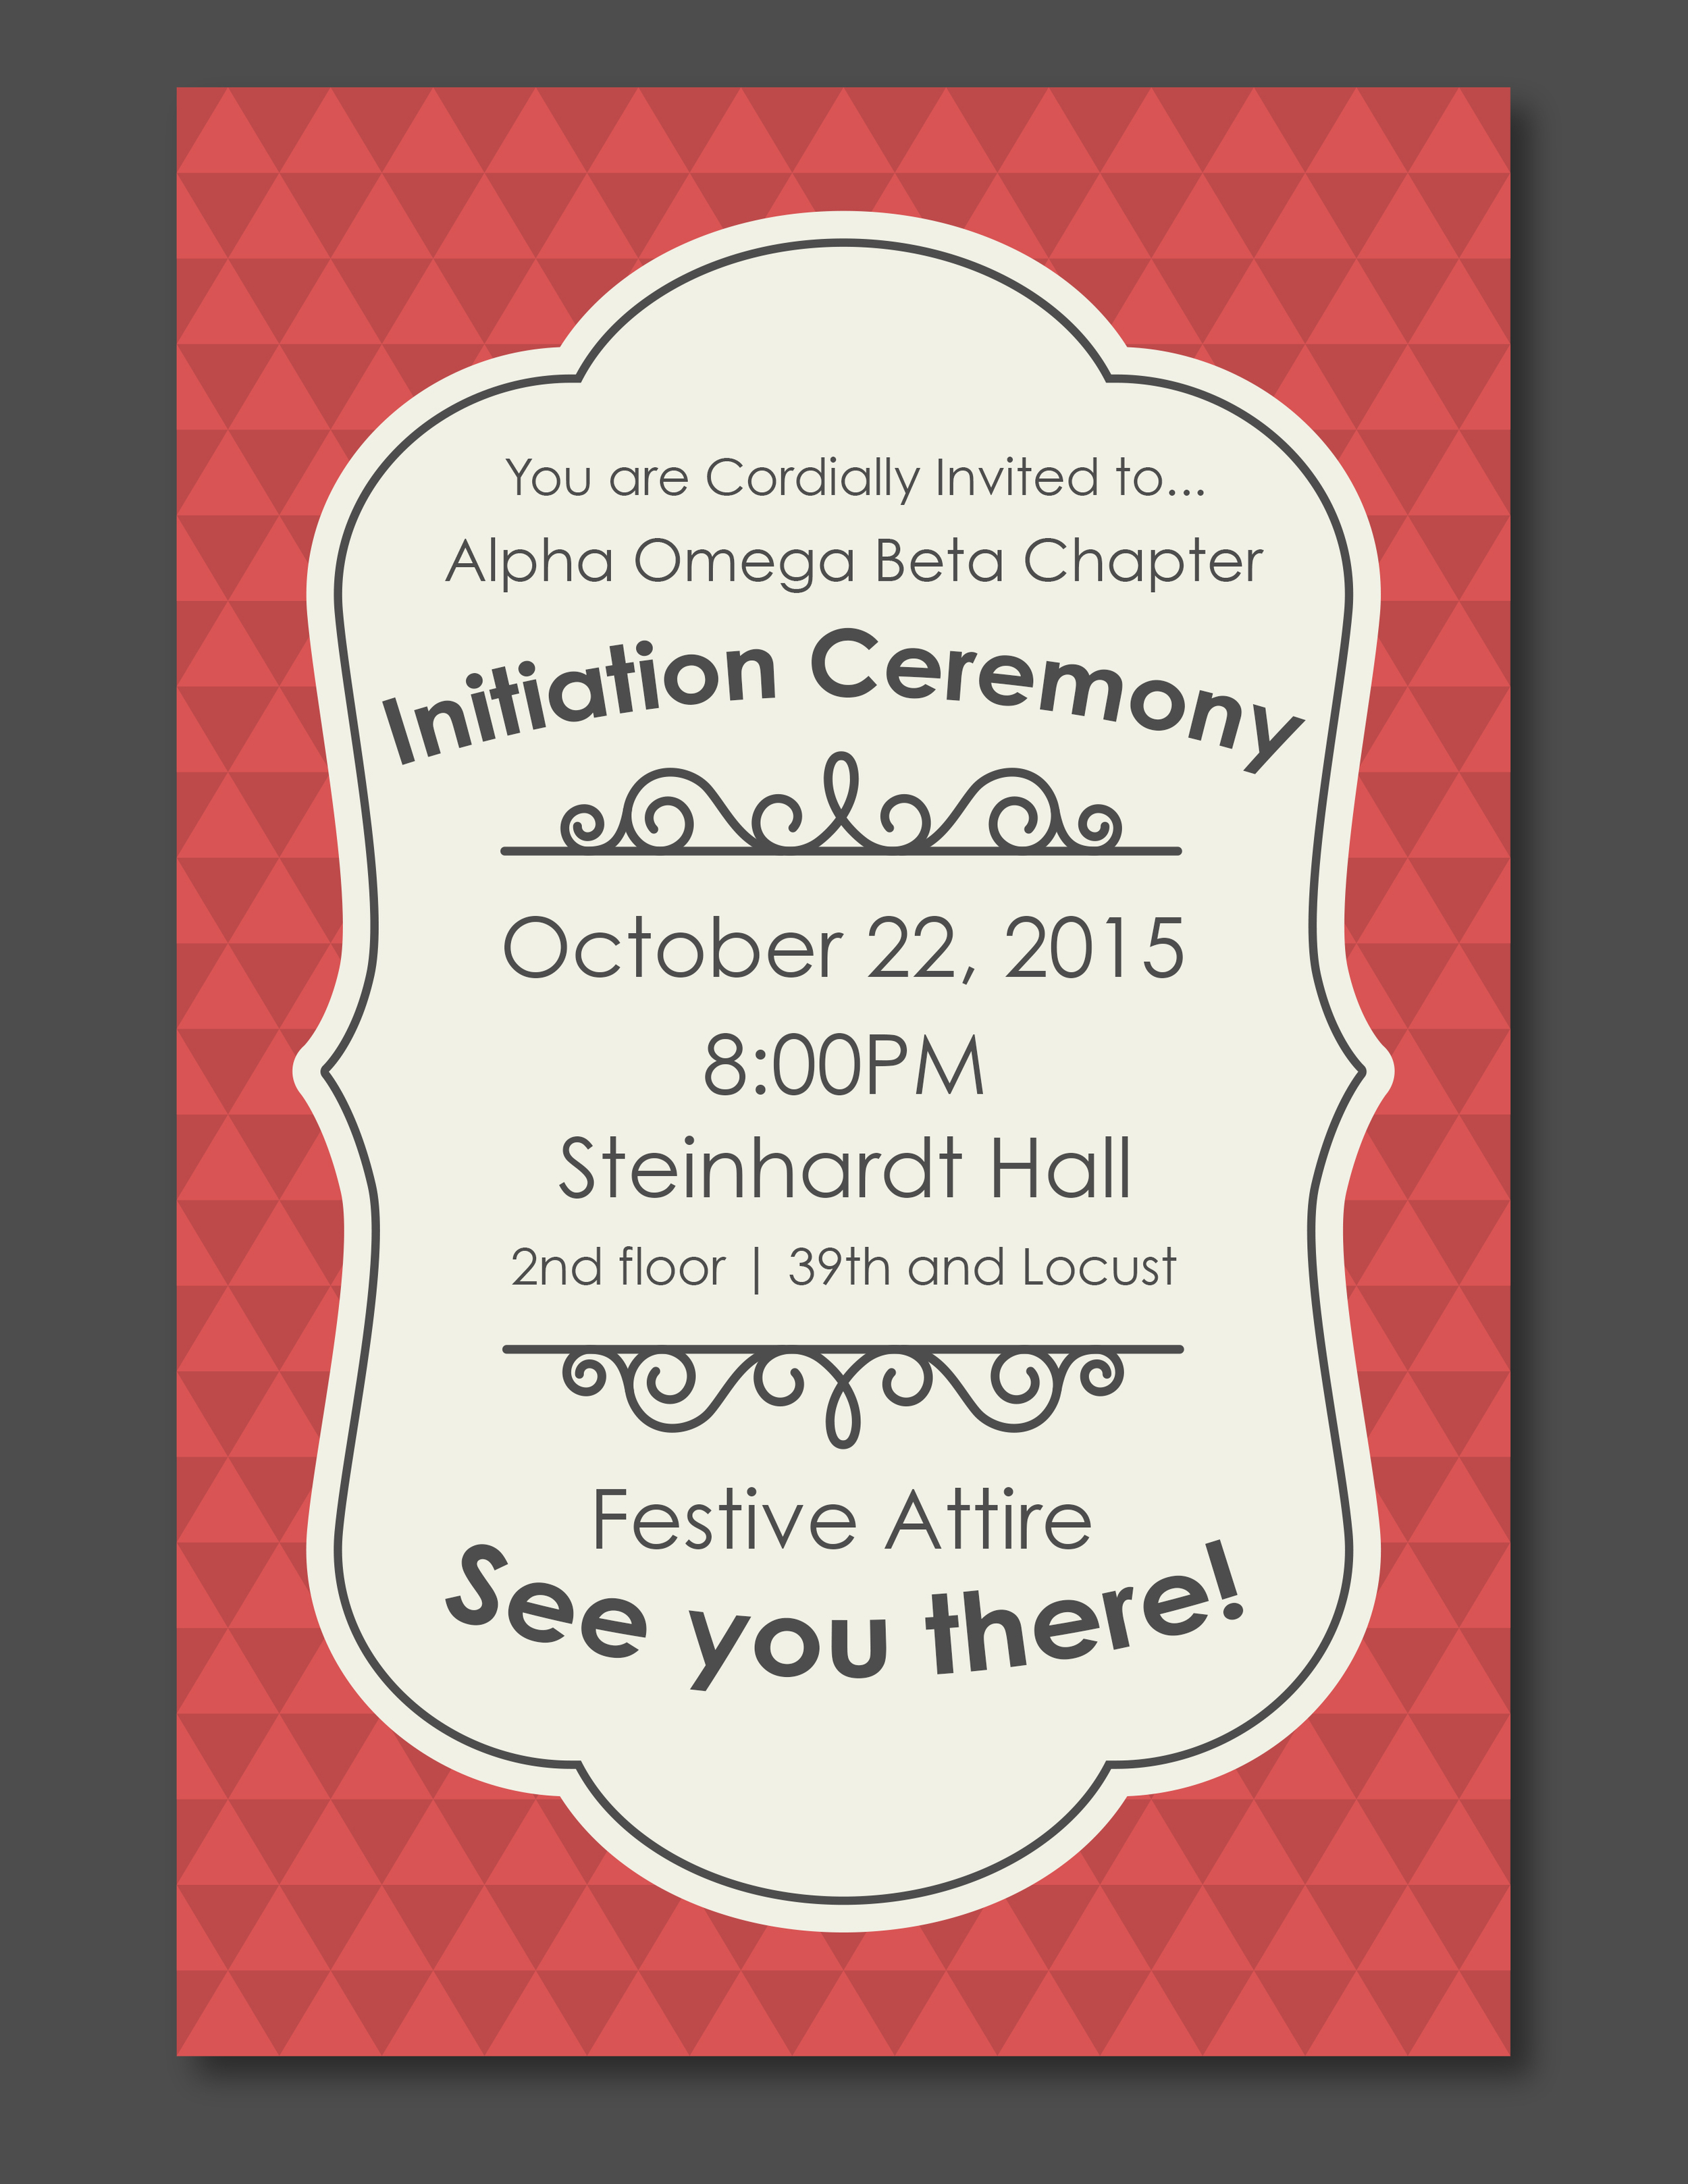 InitiationInvitation15_16.jpg